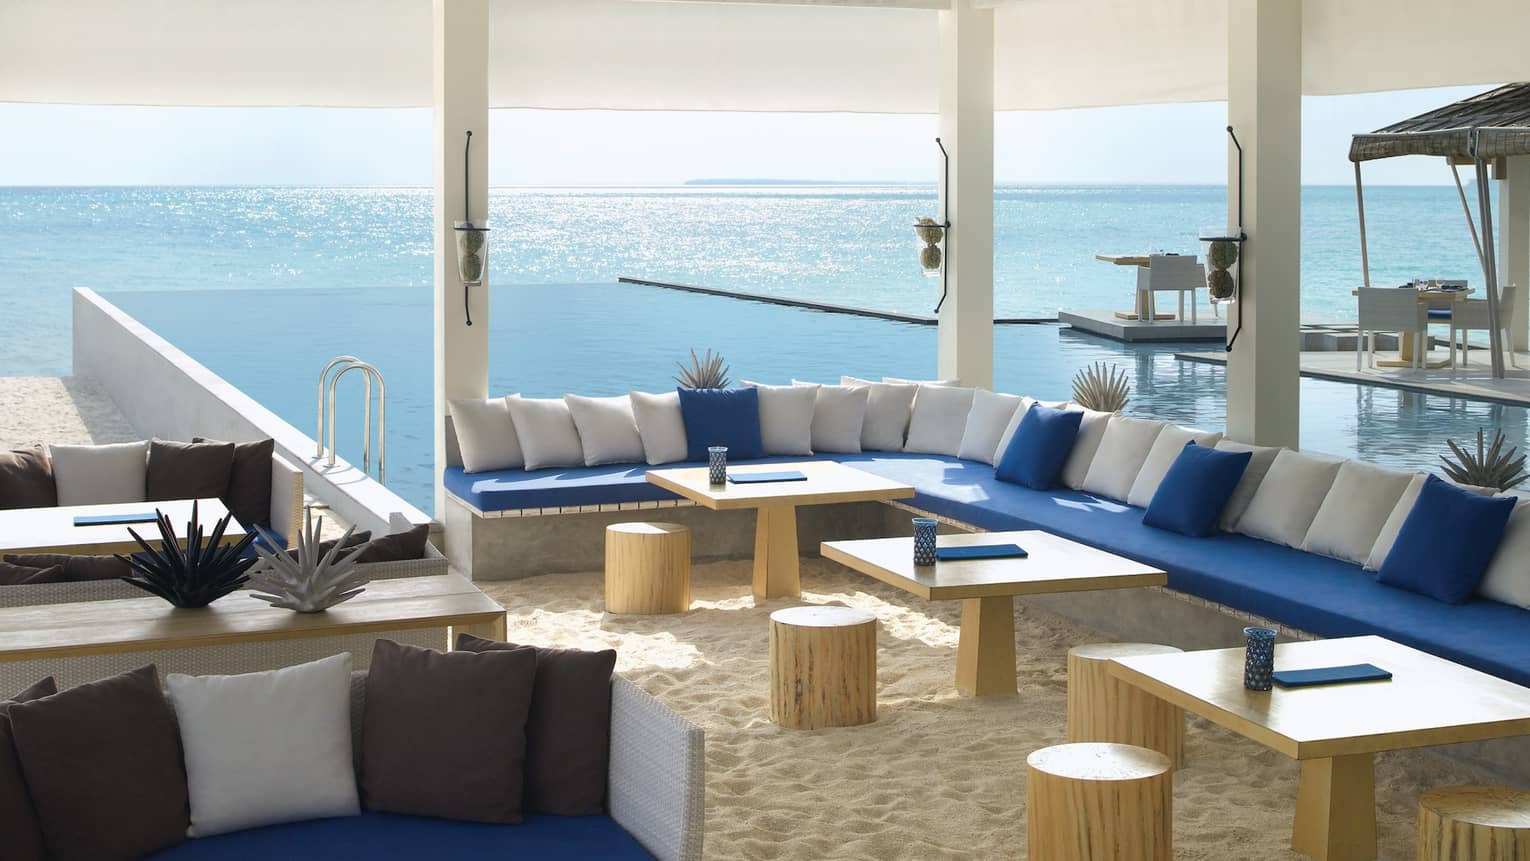 Long L-shaped booth with blue and white cushions, tables on sand in Seabar lounge